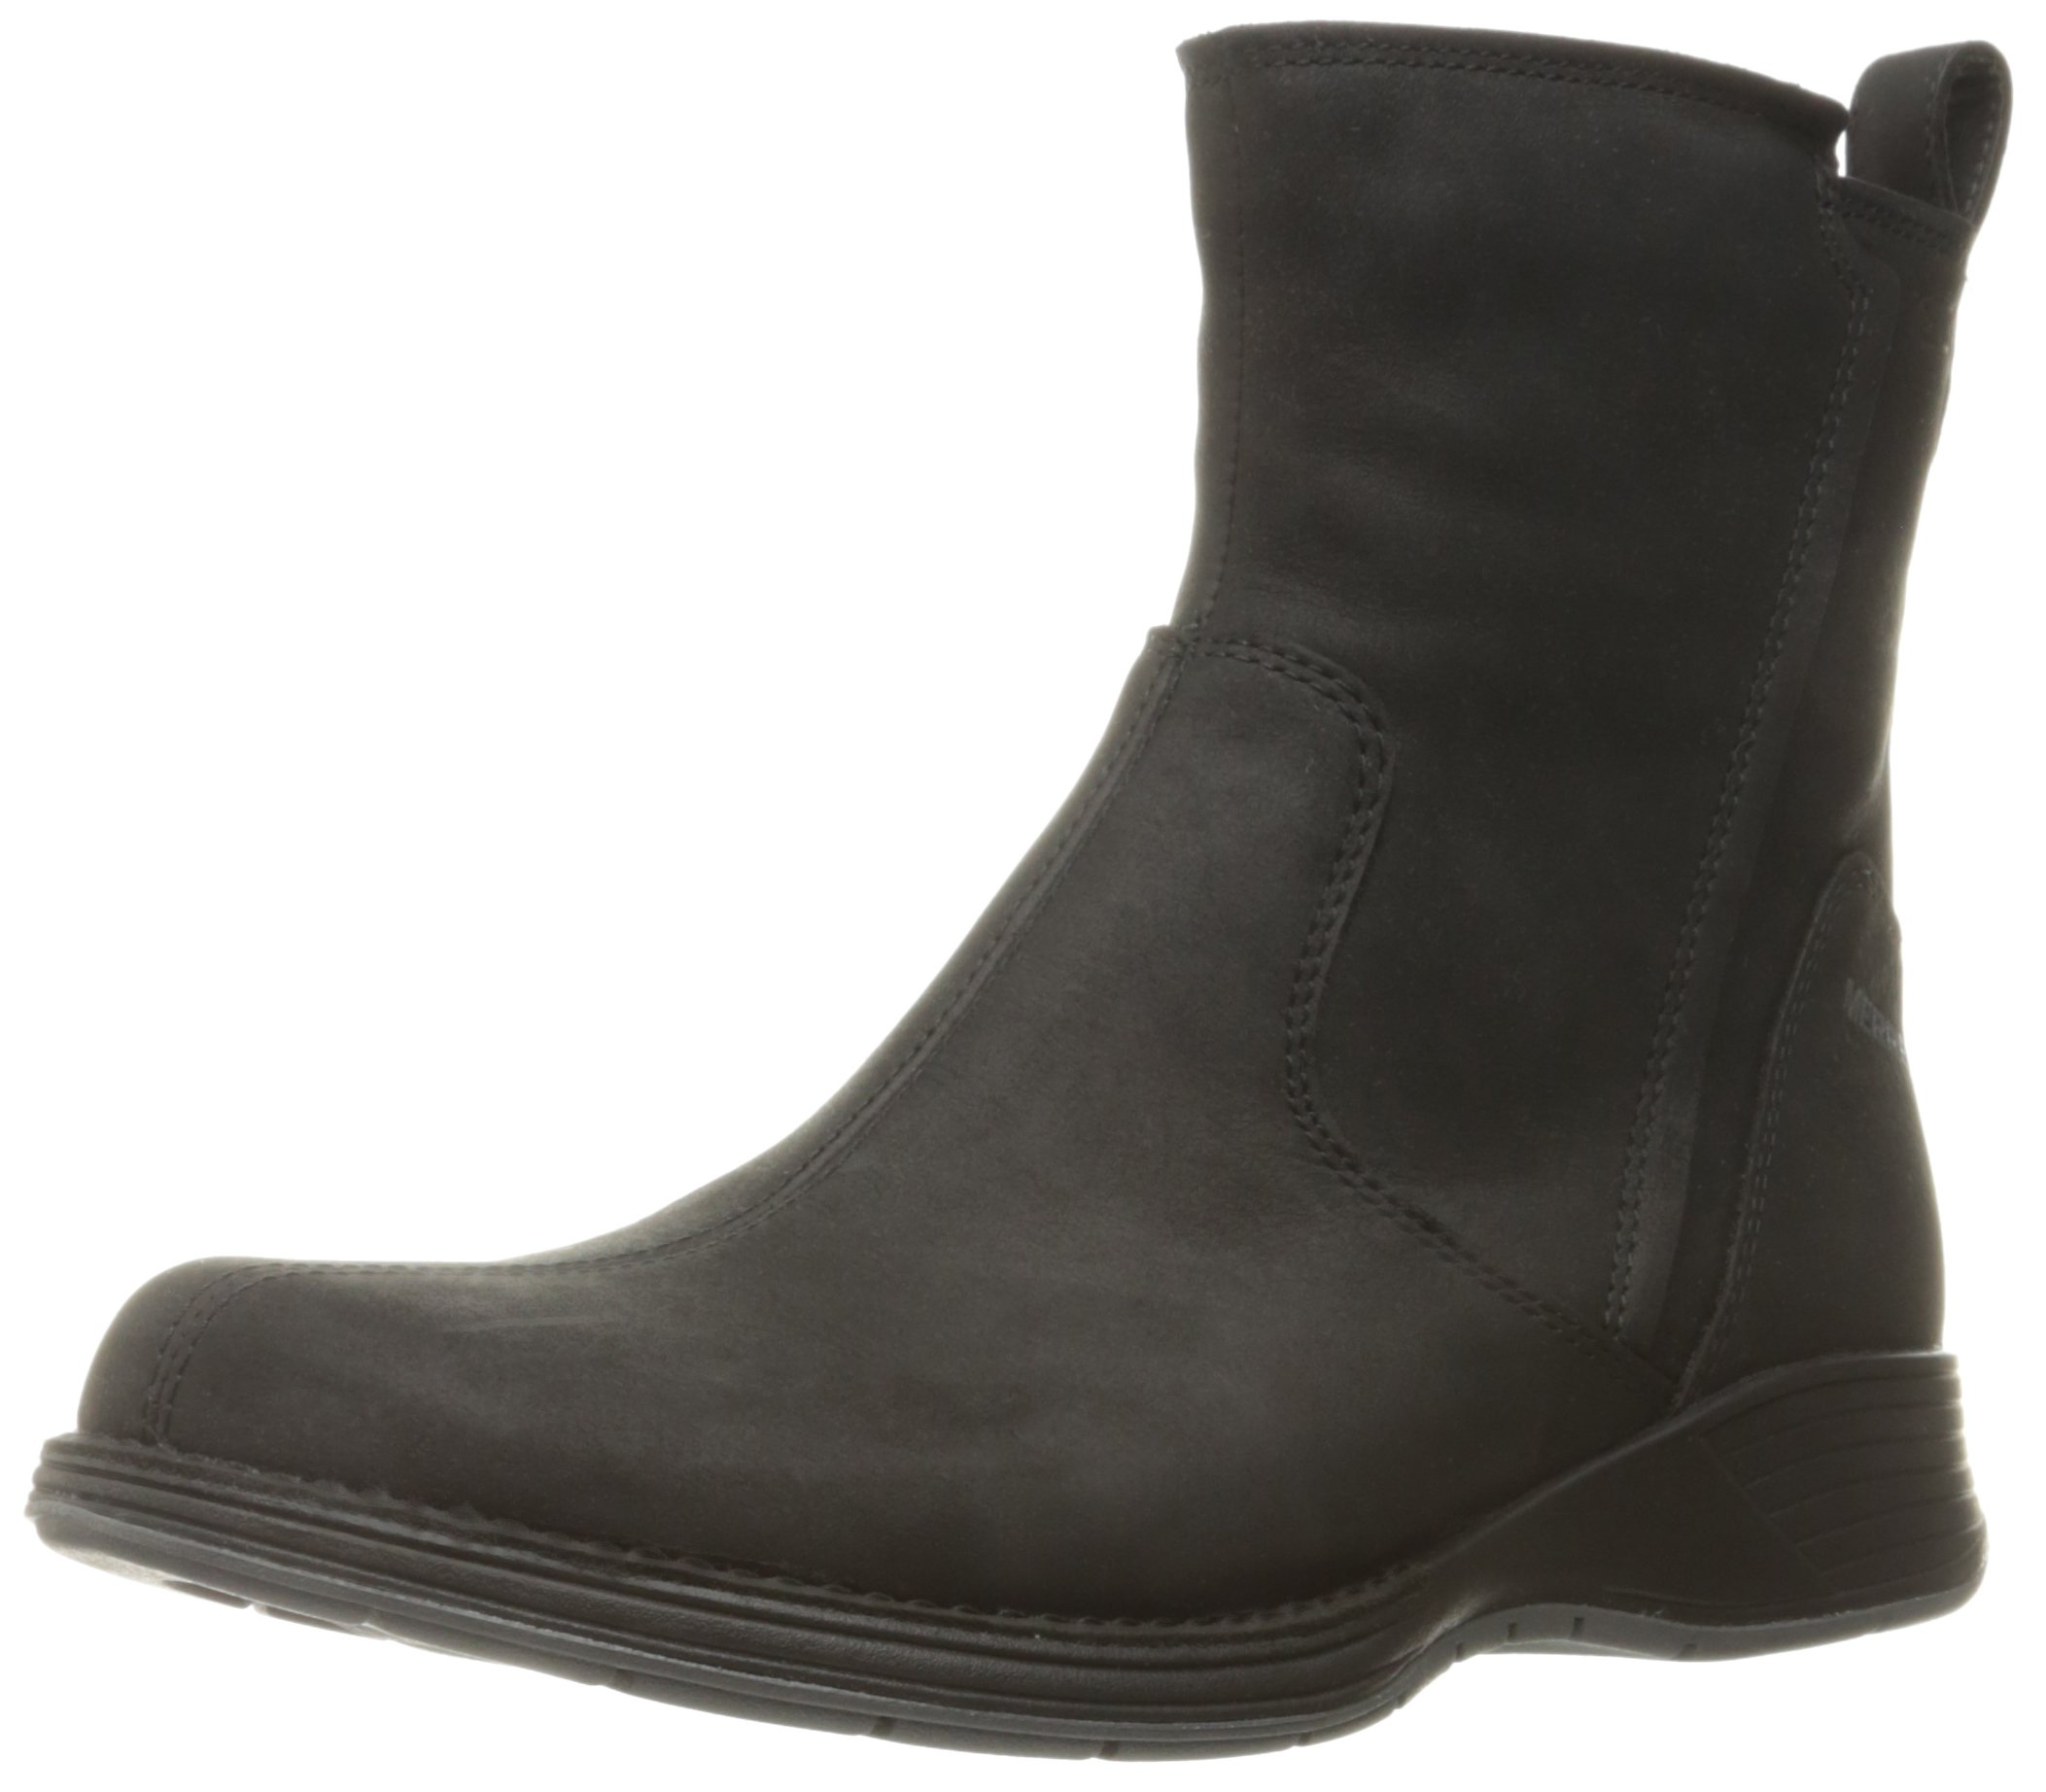 Women's Waterproof Leather Ankle Boots: Amazon.com